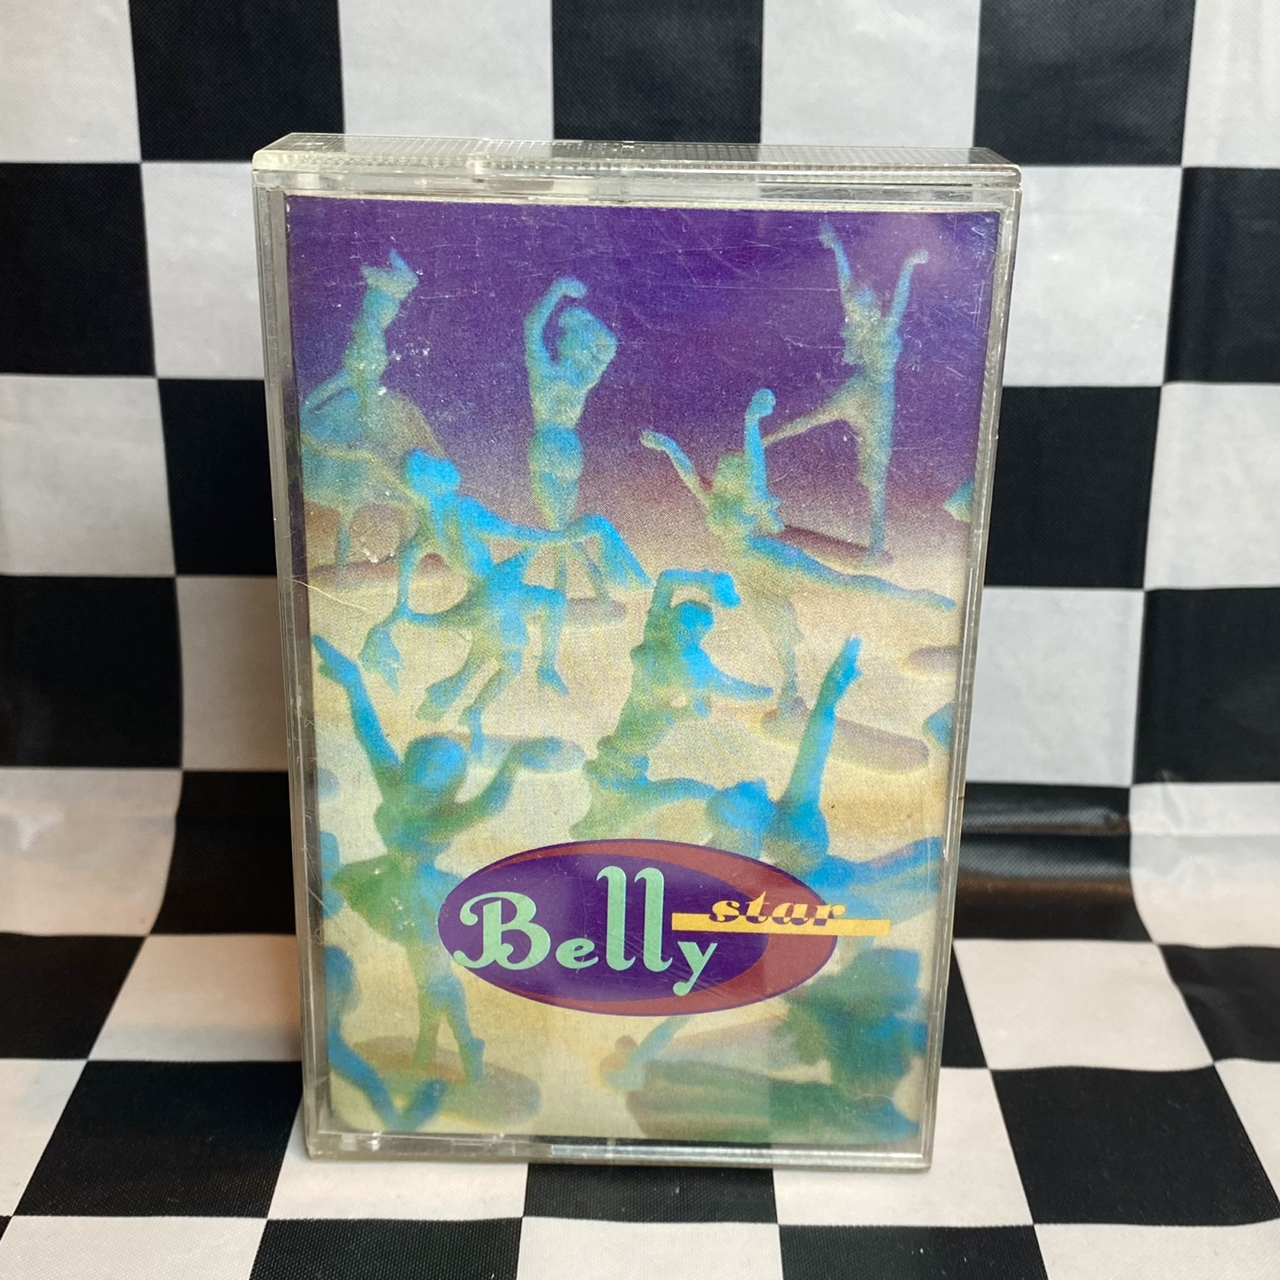 Product Image 1 - Belly - Star (1993) on